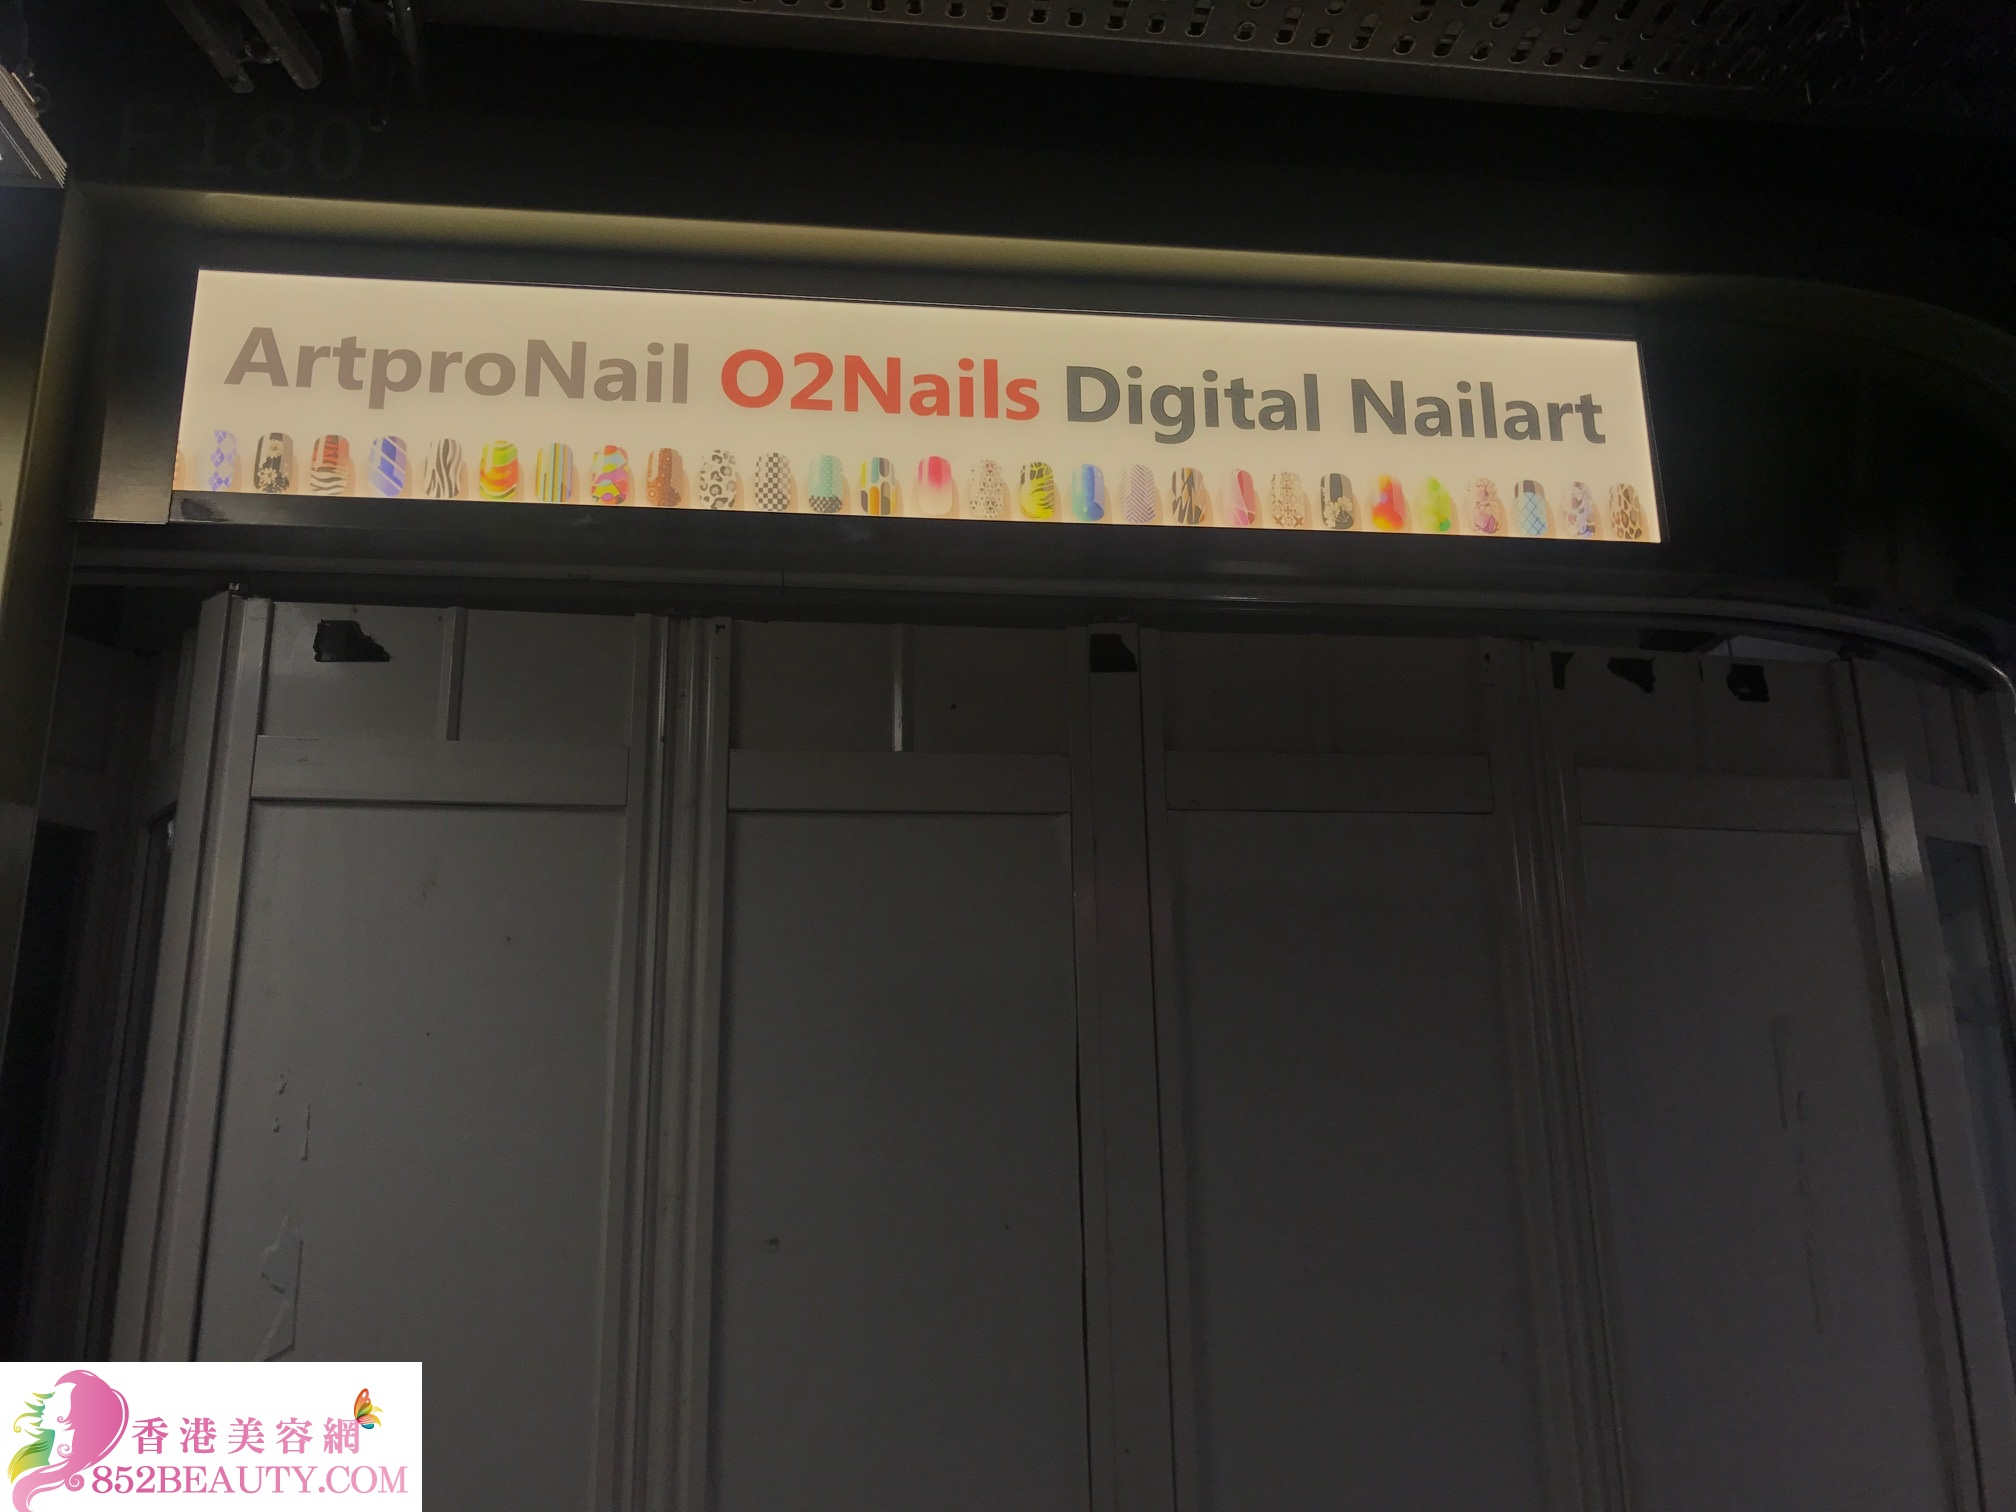 美容院: ArtproNail O2Nails Digital Nailart